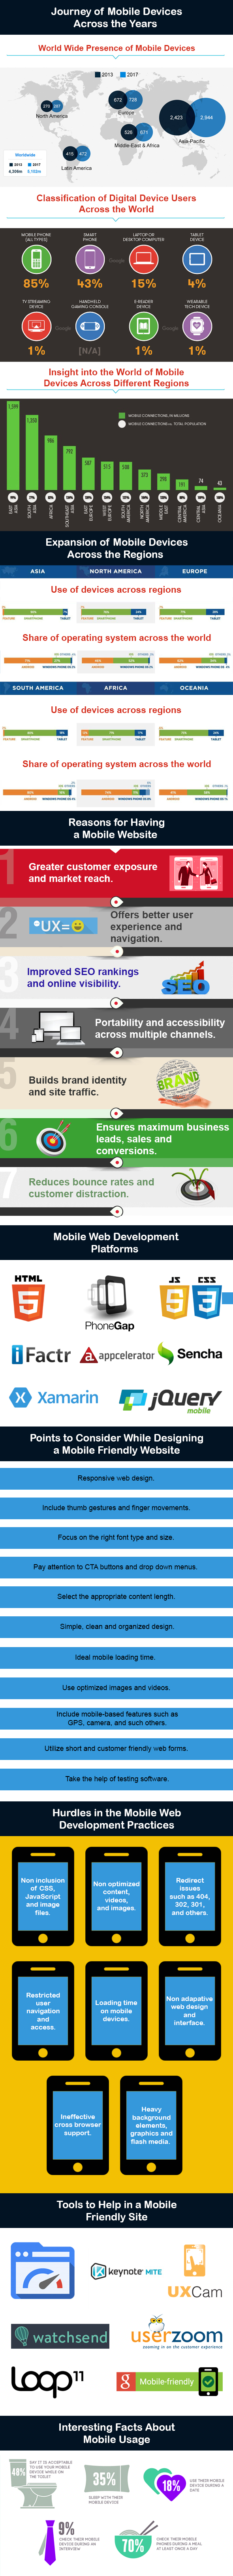 Understanding the importance of power packed mobile website-Infographic| Velsof